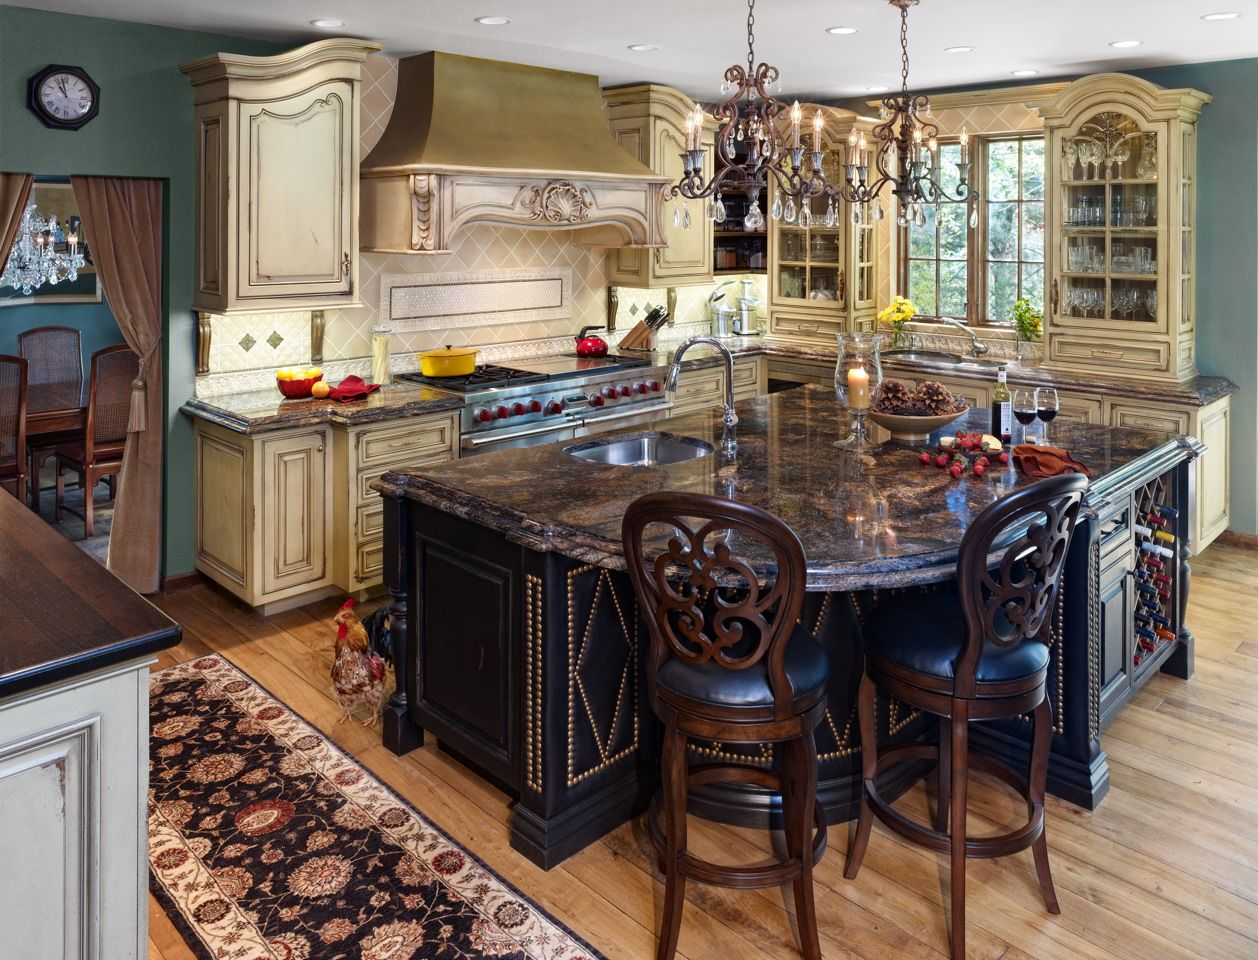 This Is An Old World Kitchen Including A Multitude Of Special Applications Leather Back Splash Somona Tile S Custom Kitchen Cabinets Old World Kitchens Home